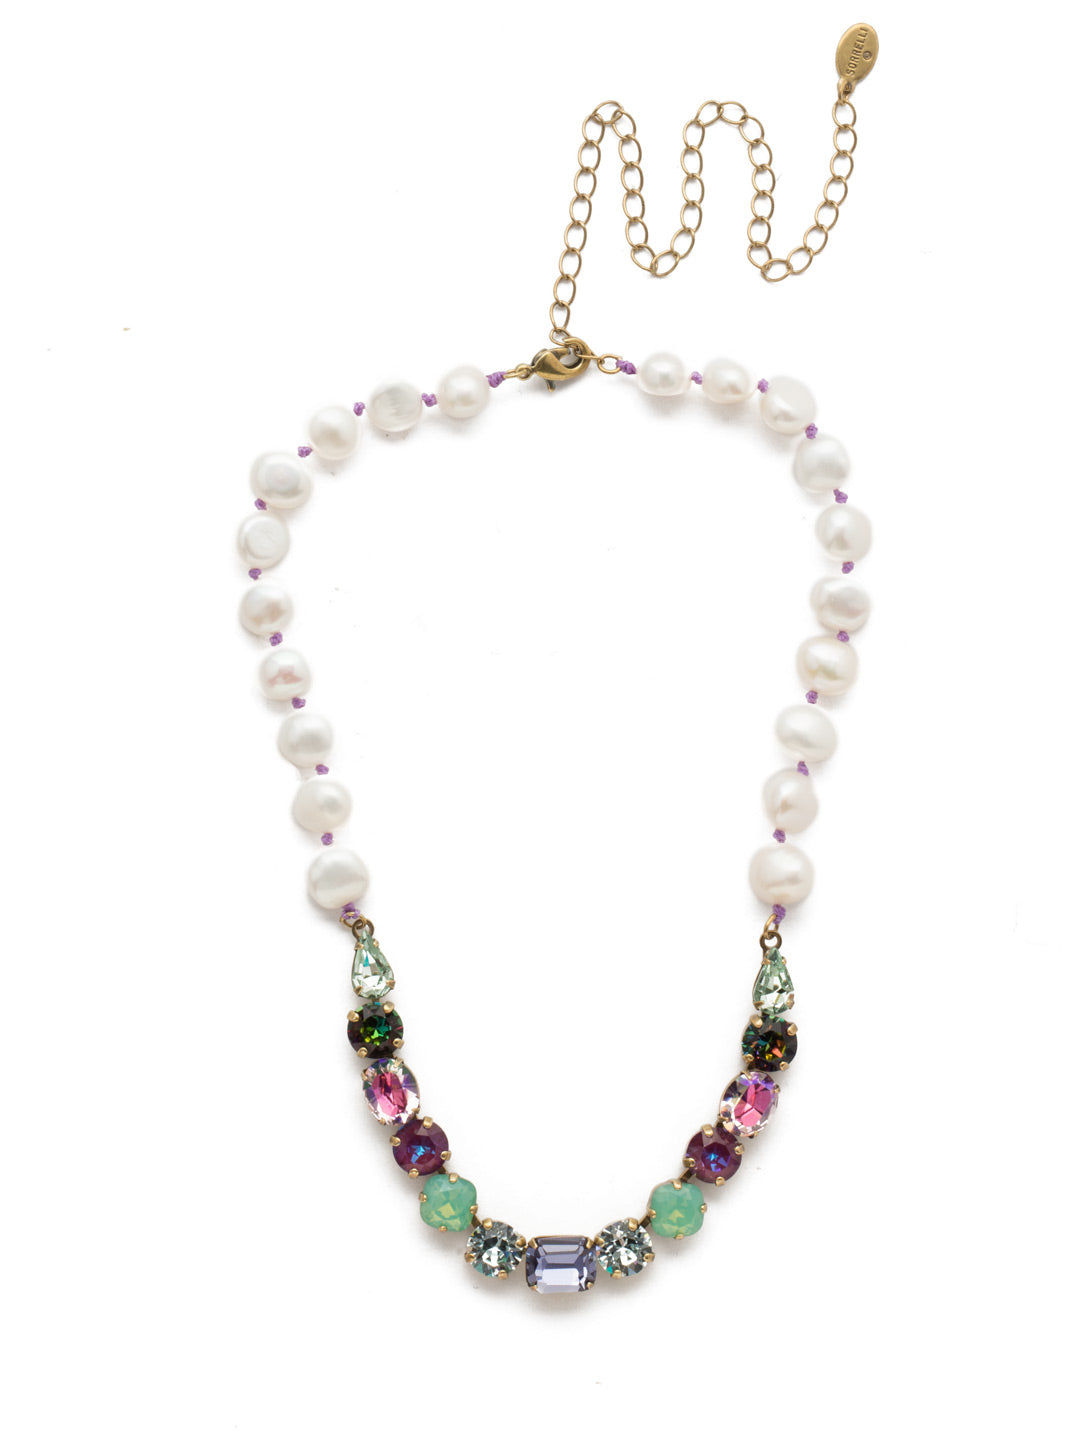 Cadenza Tennis Necklace - NEC14AGIRB